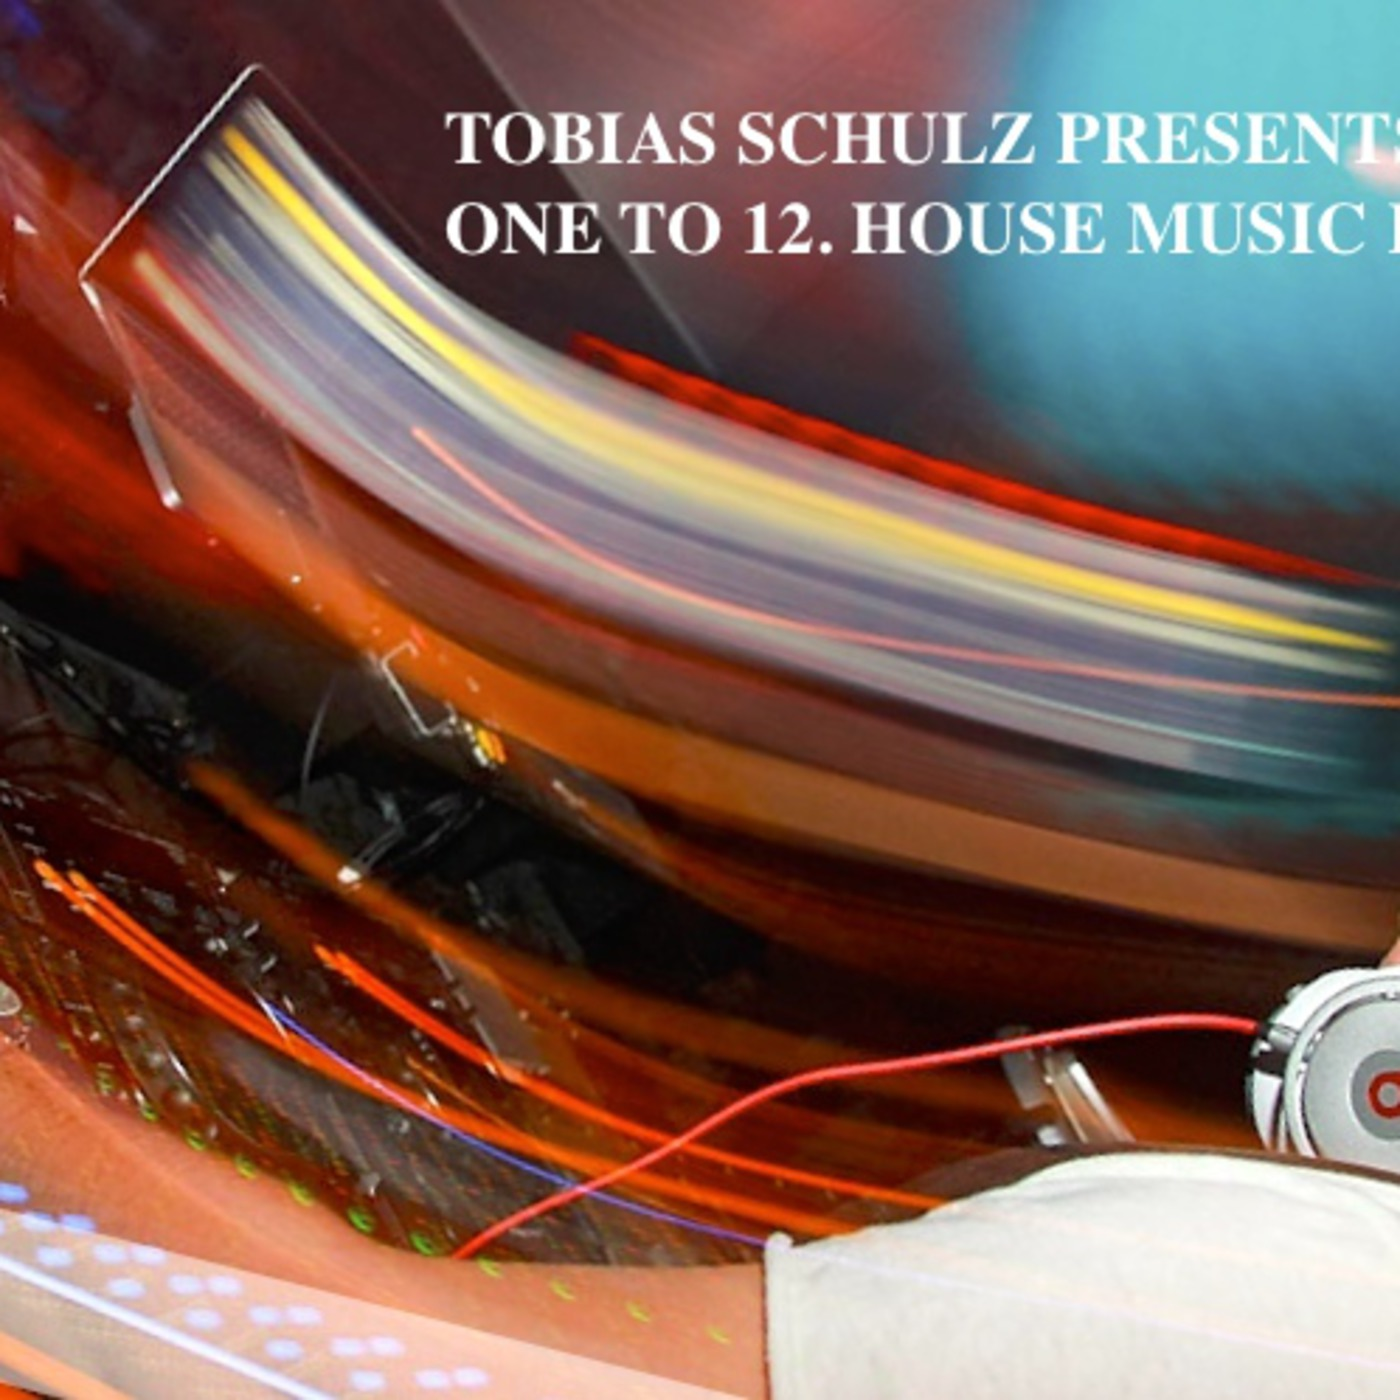 ONE TO 12. HOUSE MUSIC PODCAST by TOBIAS SCHULZ